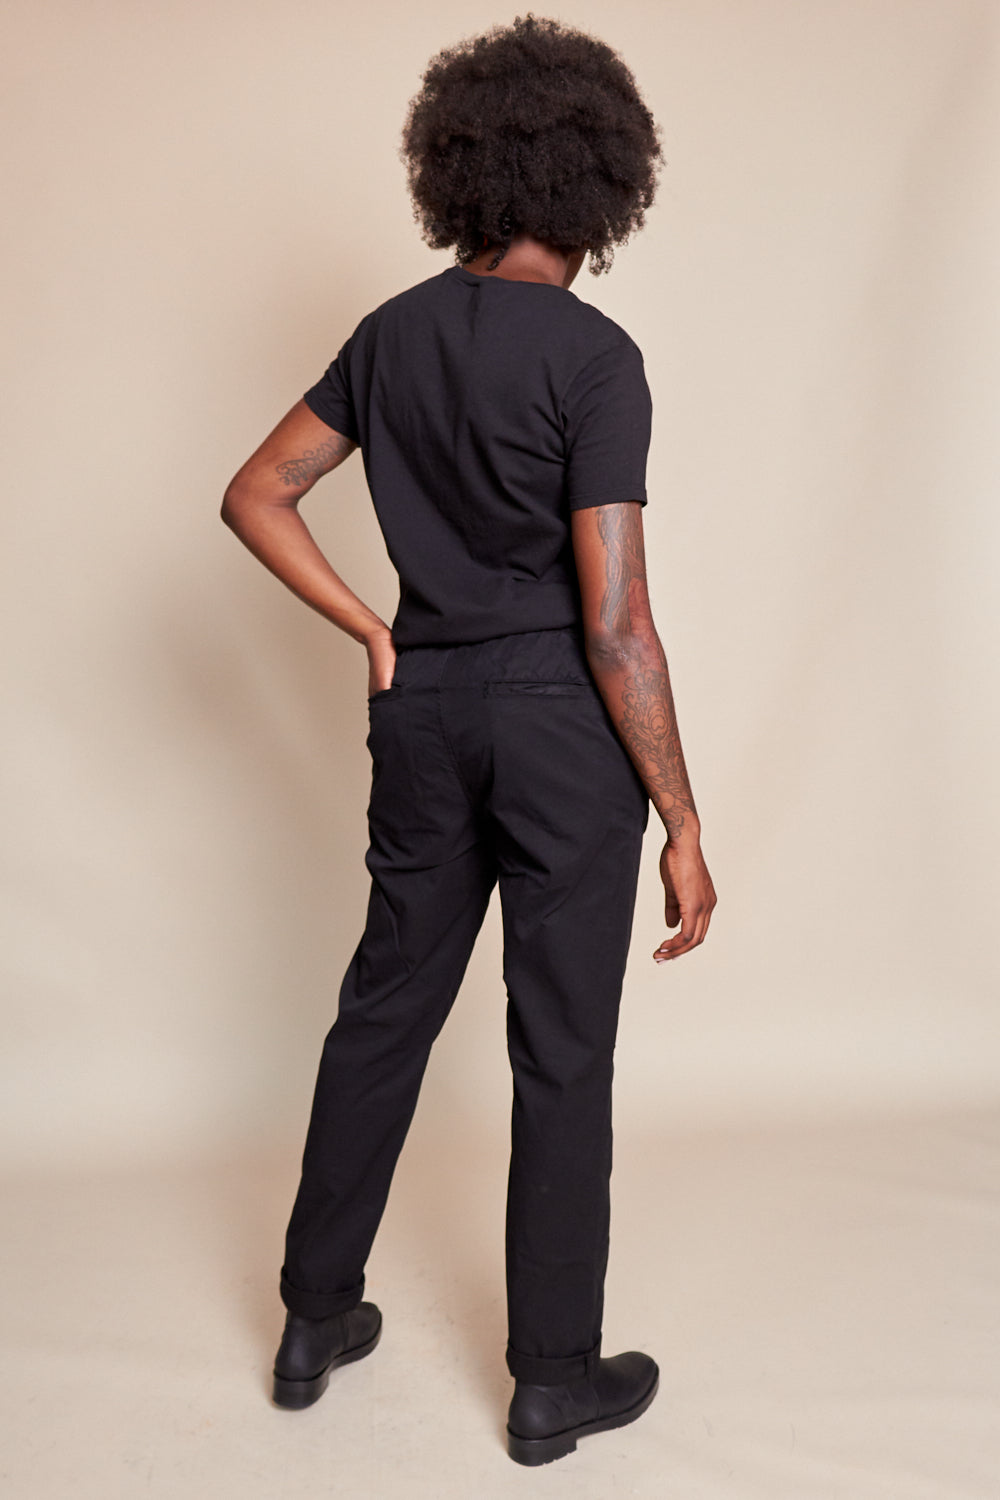 Save Khaki United Twill Easy Chino in Black - Vert & Vogue